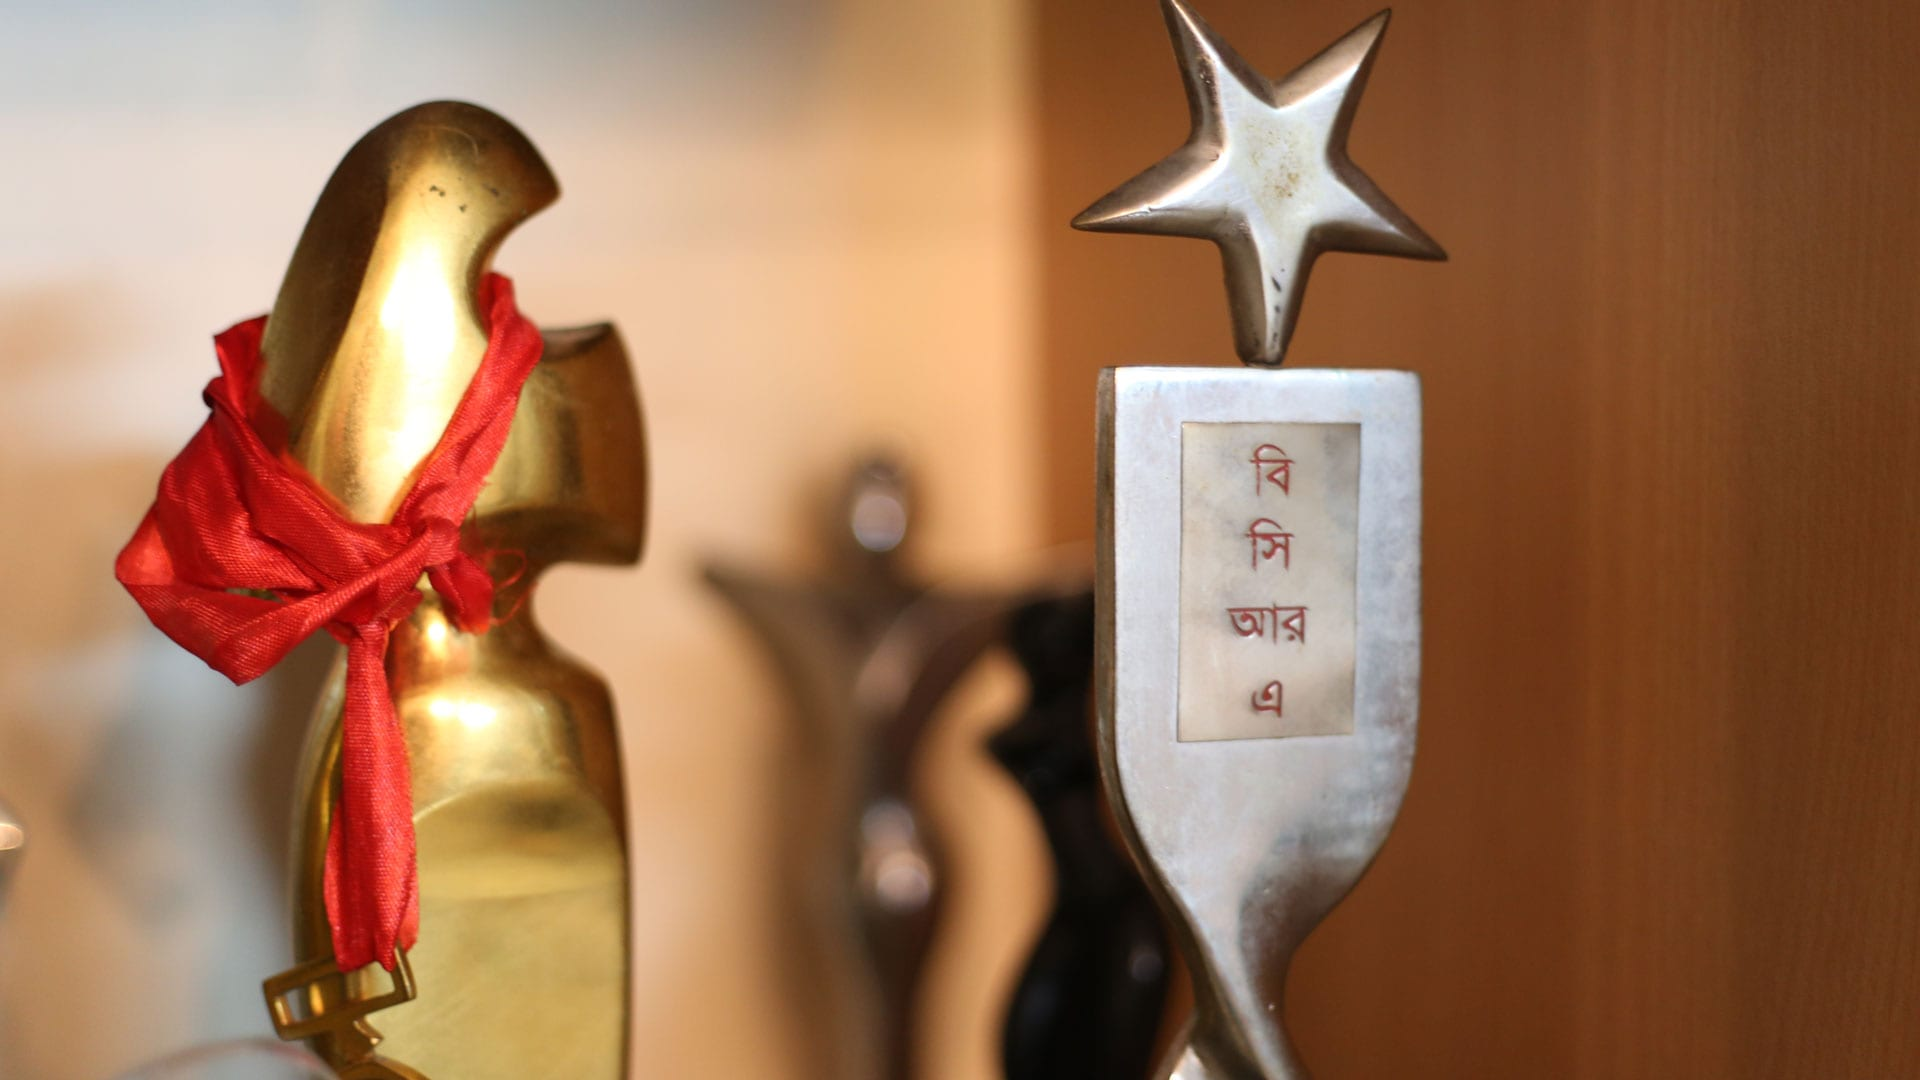 List of awards and nominations received by Kanak Chapa